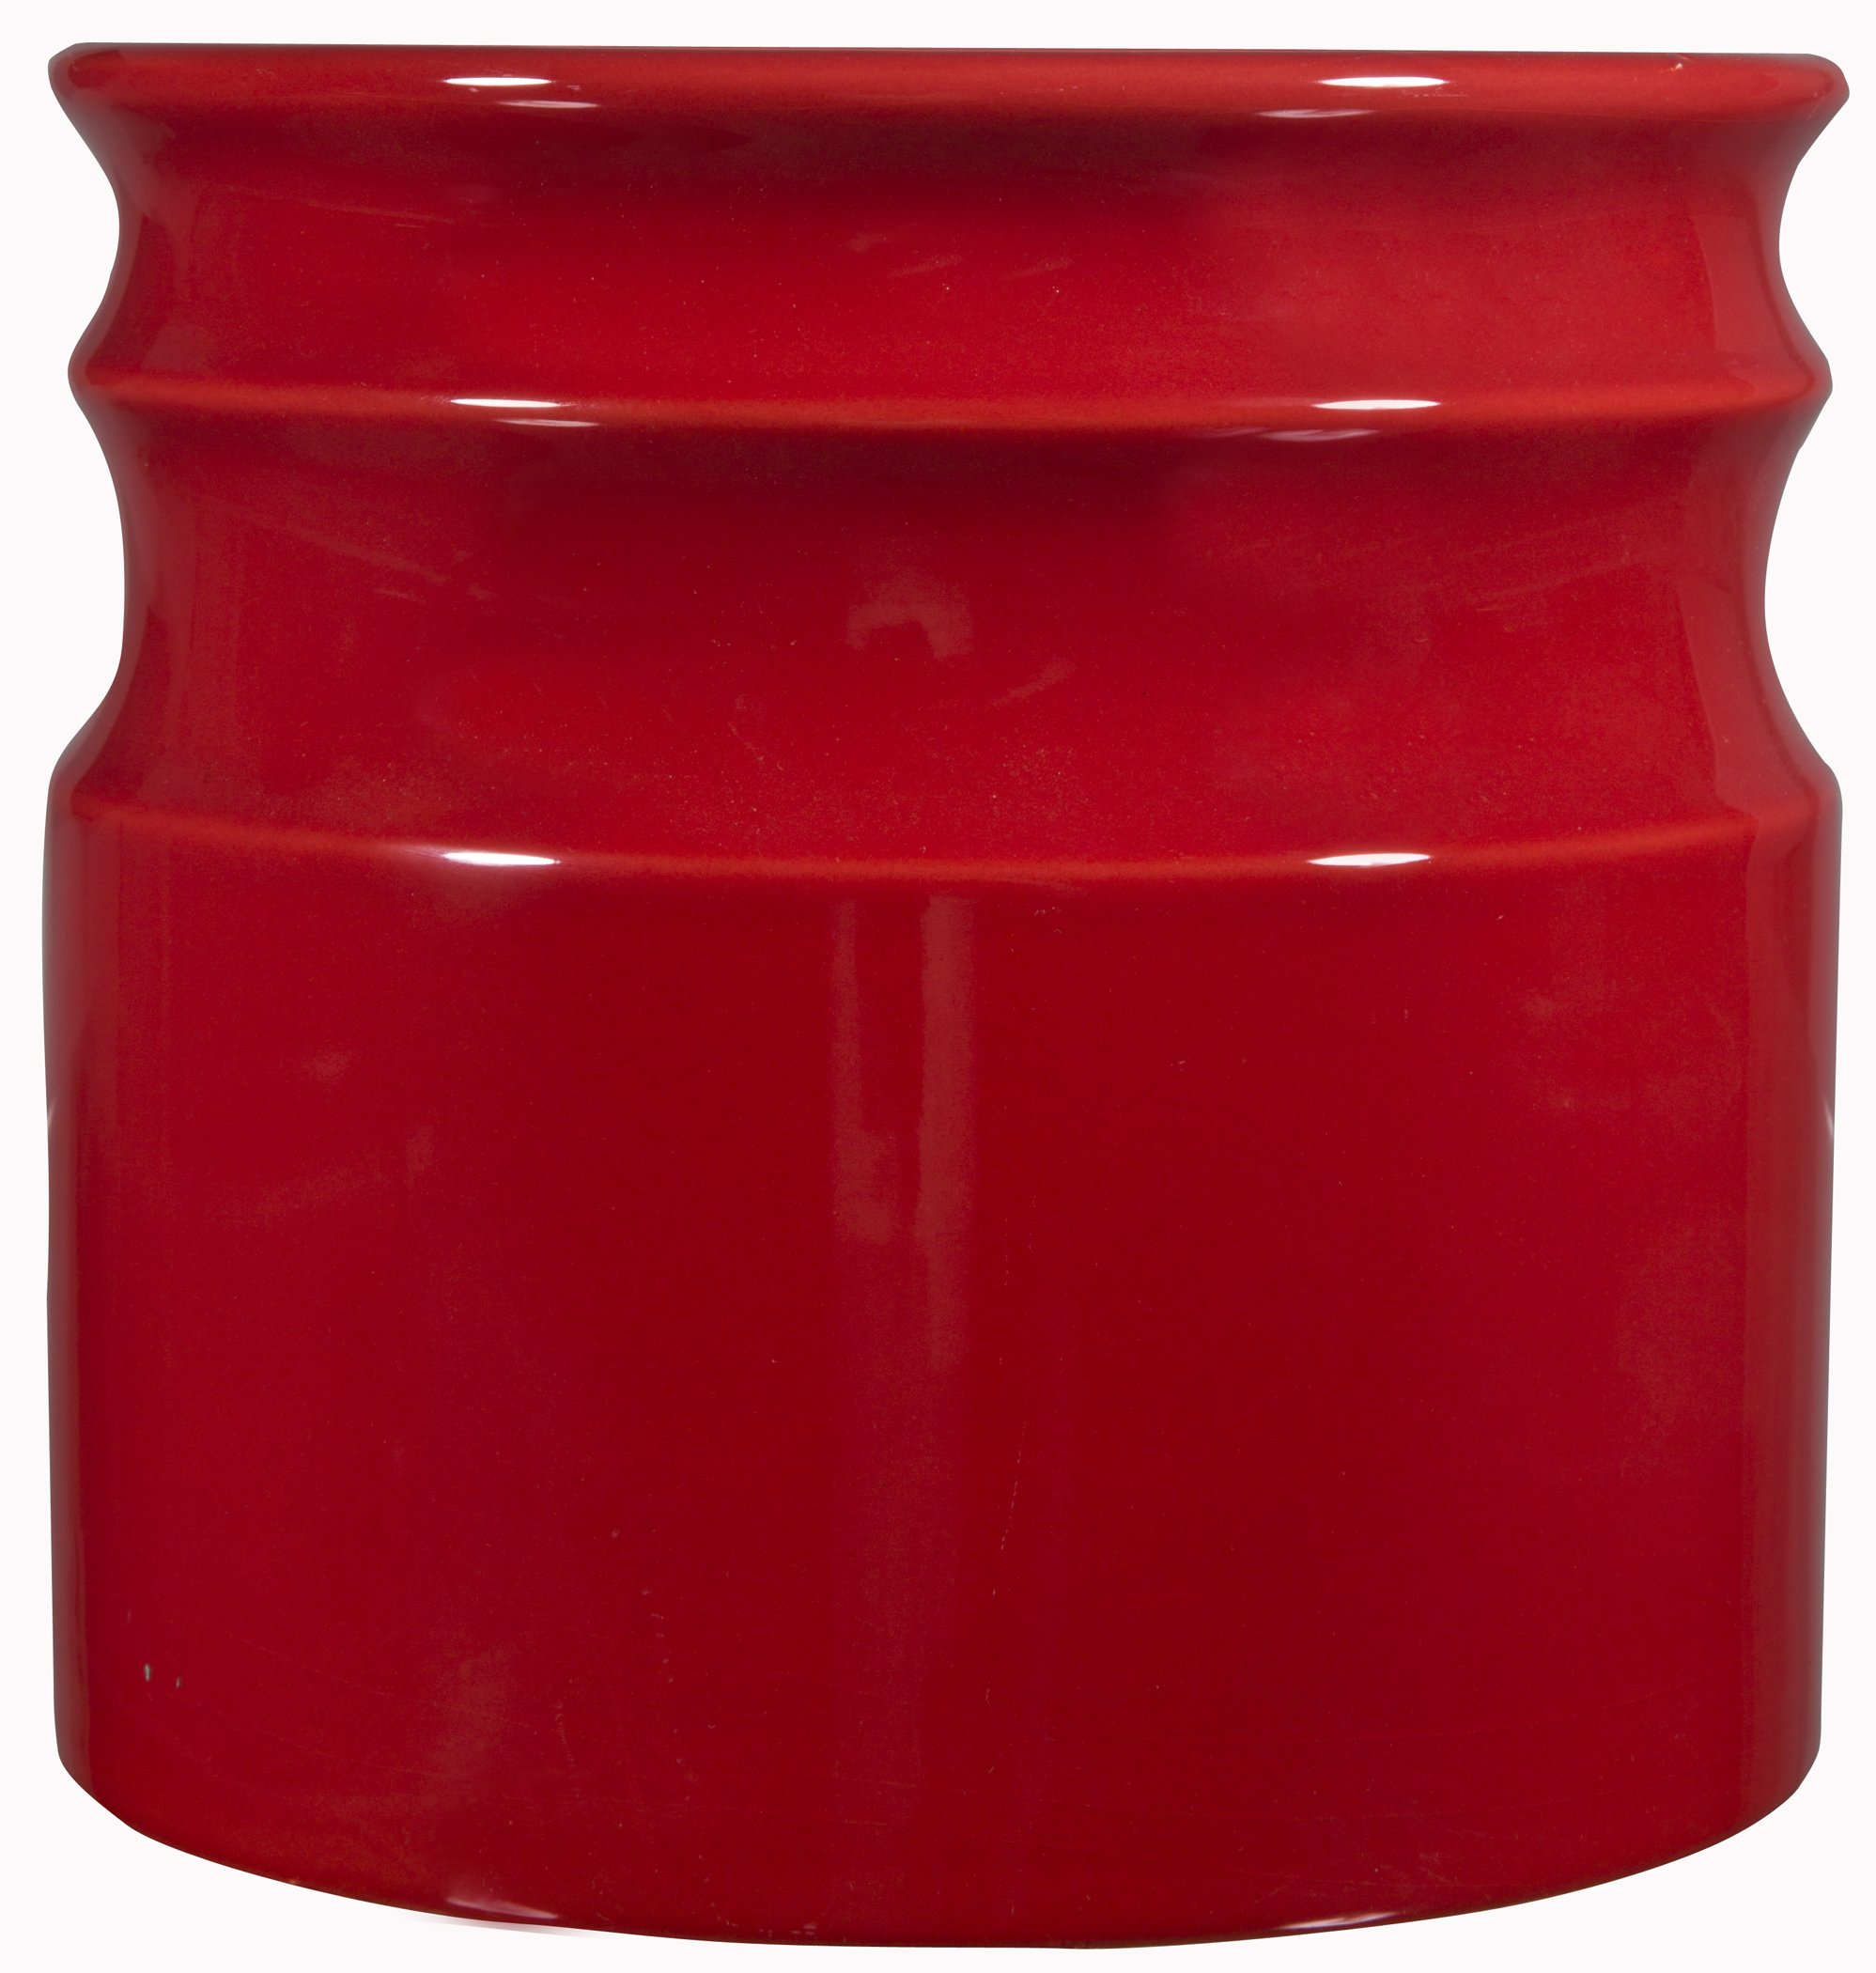 Home Essentials Beyond 66379 7.5 D in. Turino Rings Utensil Crock - Red